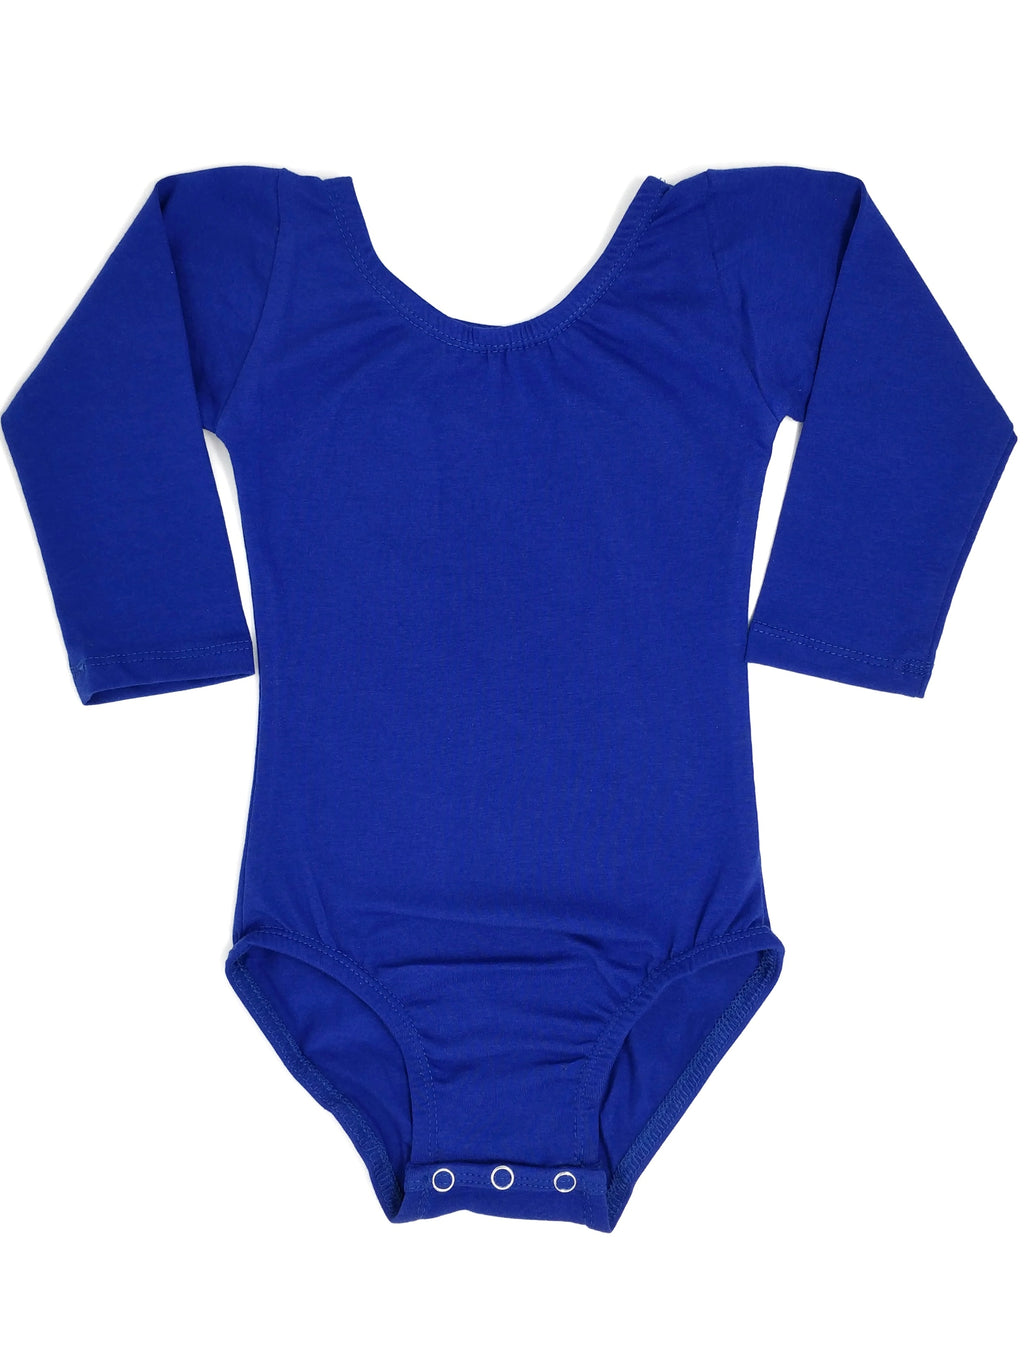 ROYAL BLUE | LONG SLEEVE LEOTARD